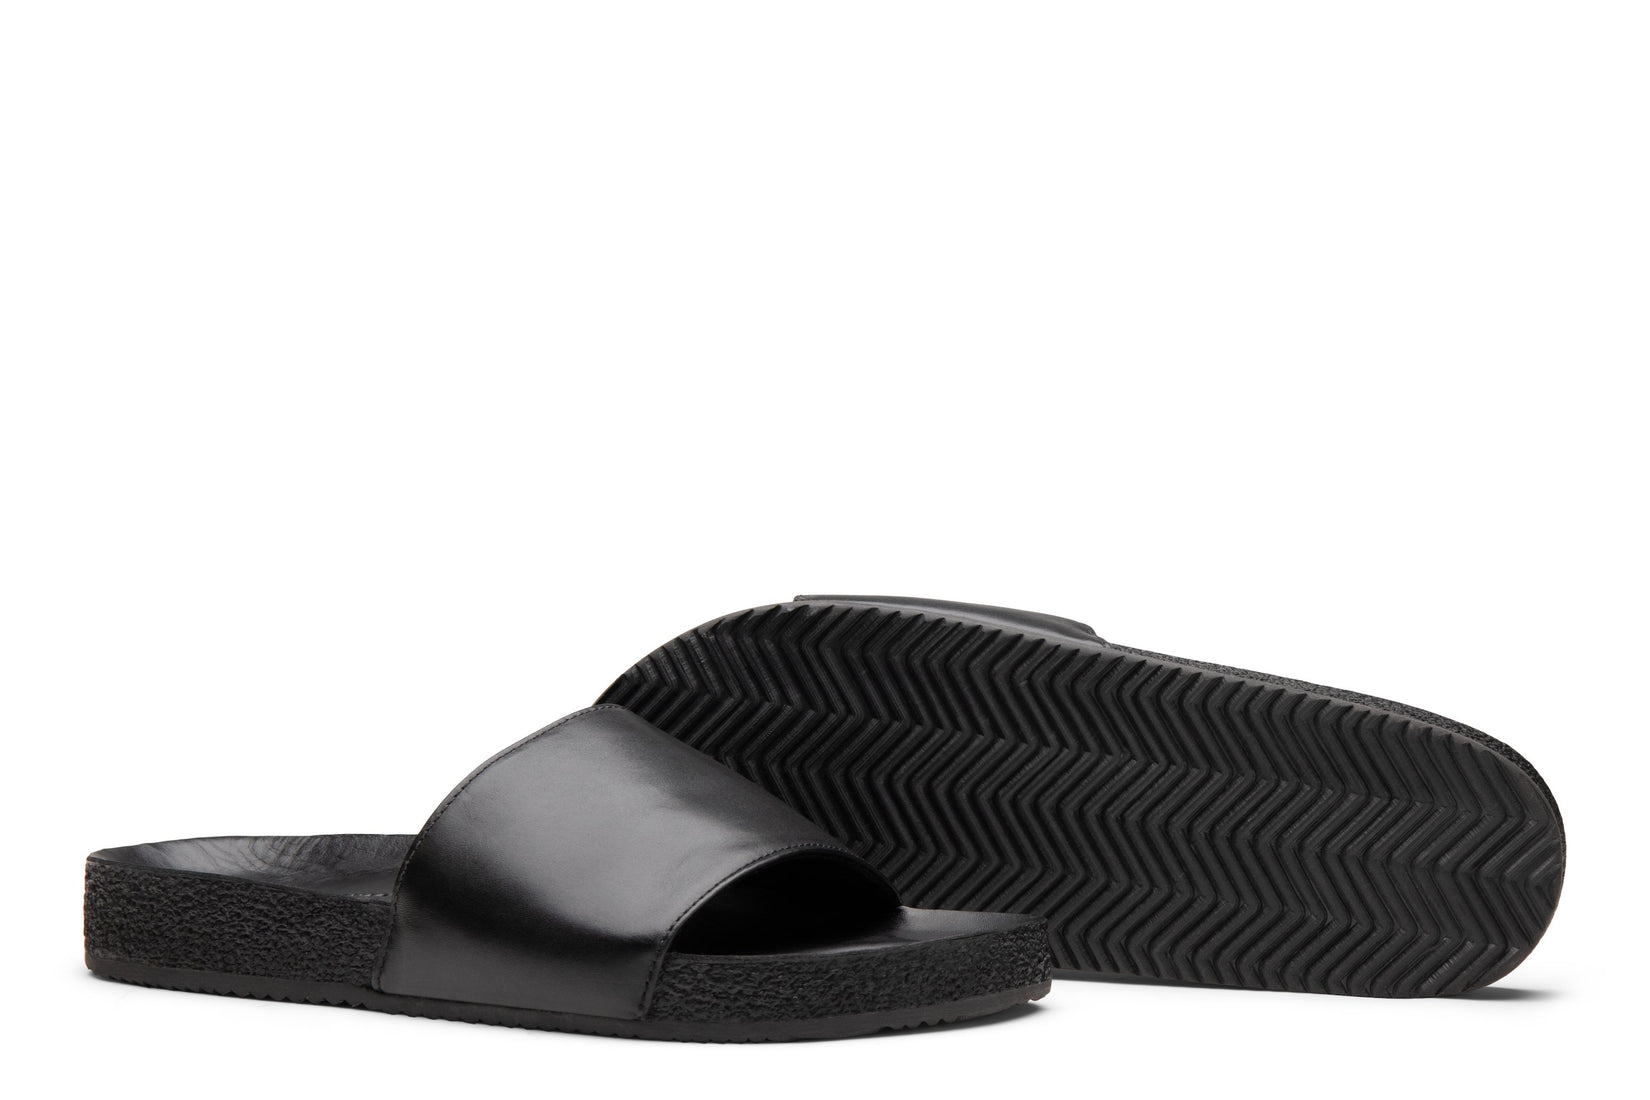 Slide Sandal in Black